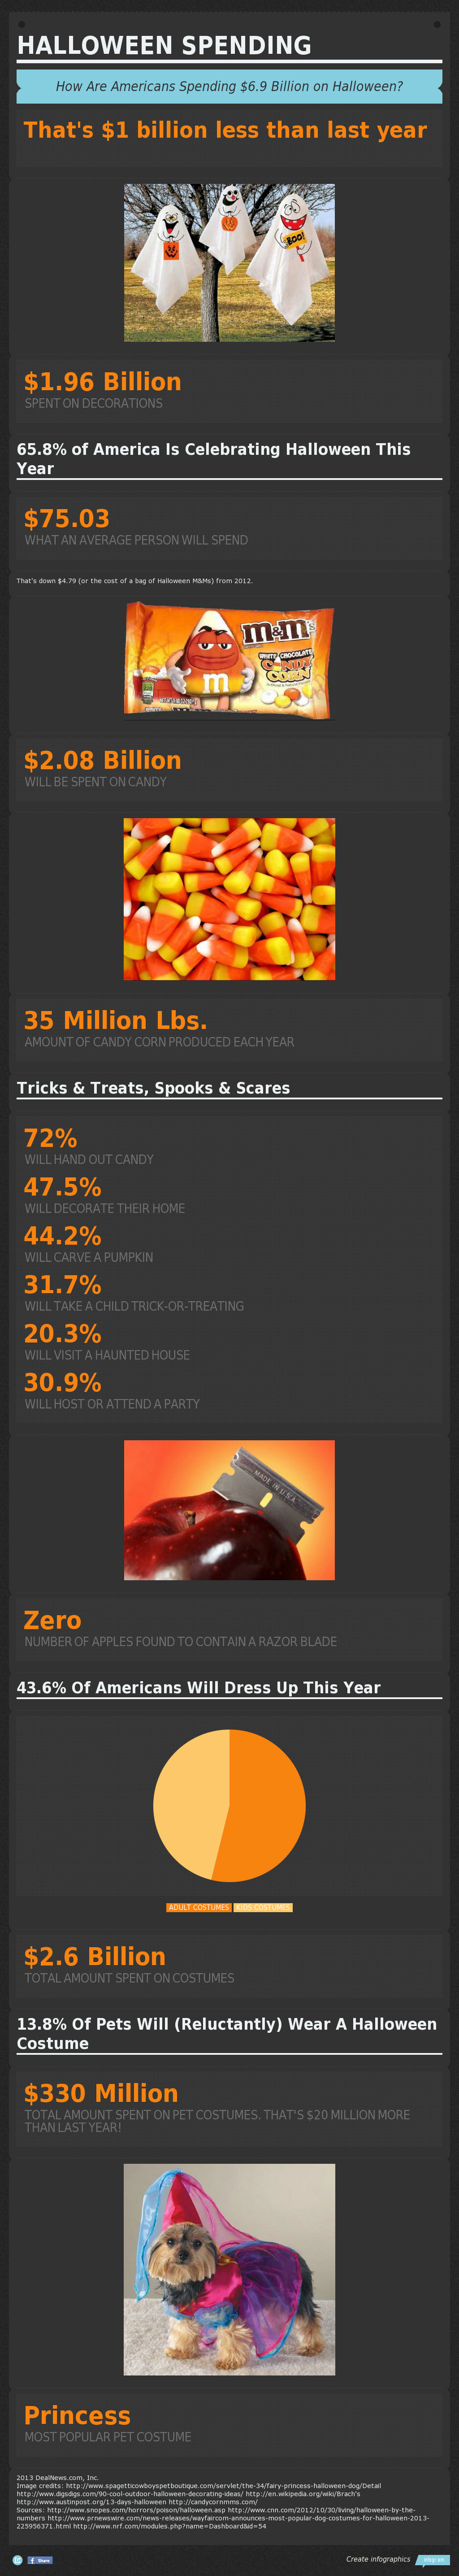 Halloween Spending 2013-Infographic